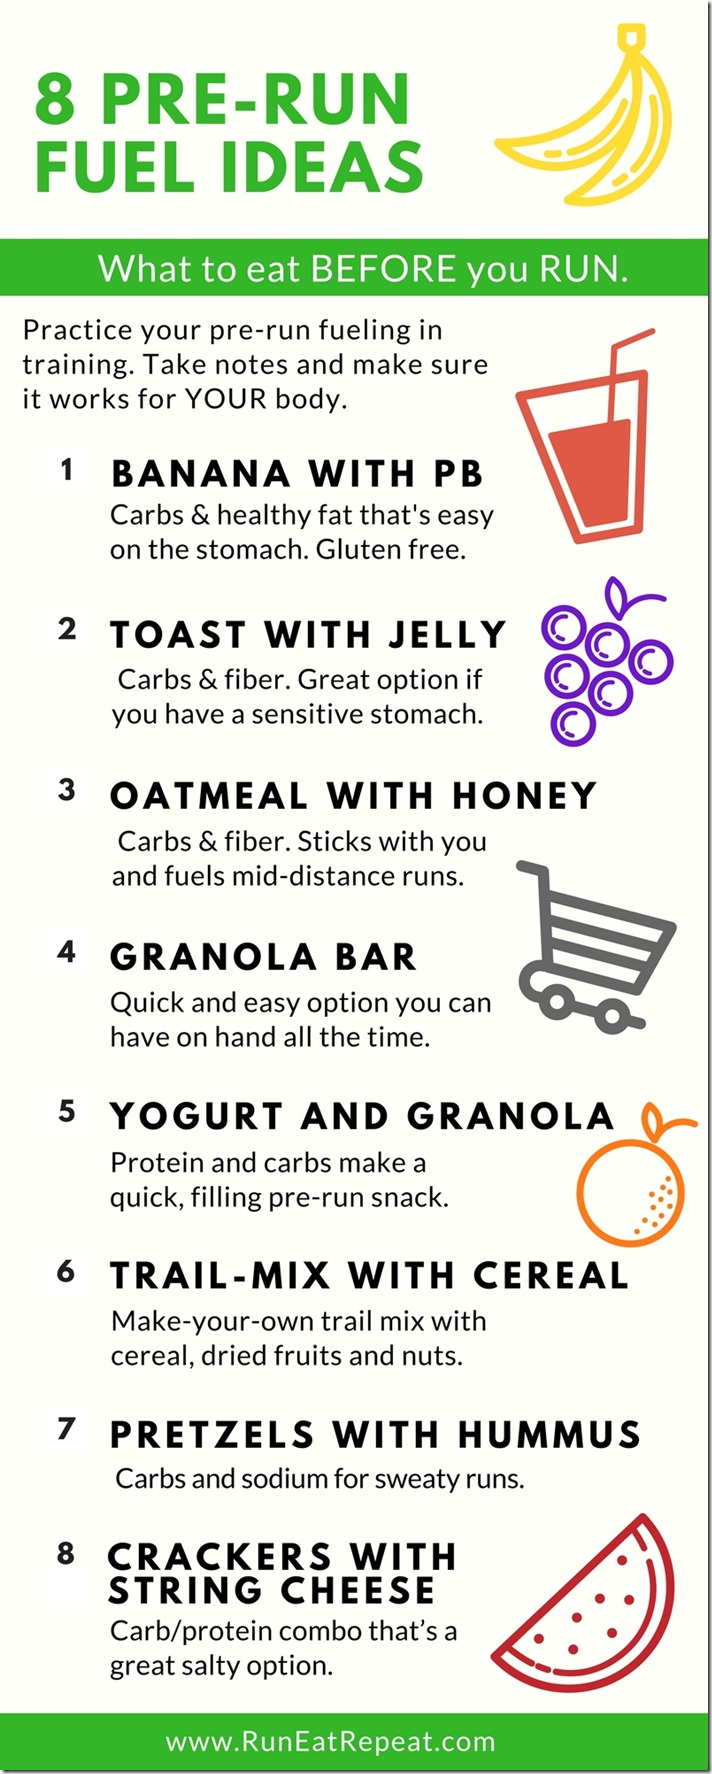 8 Pre-run fuel ideas